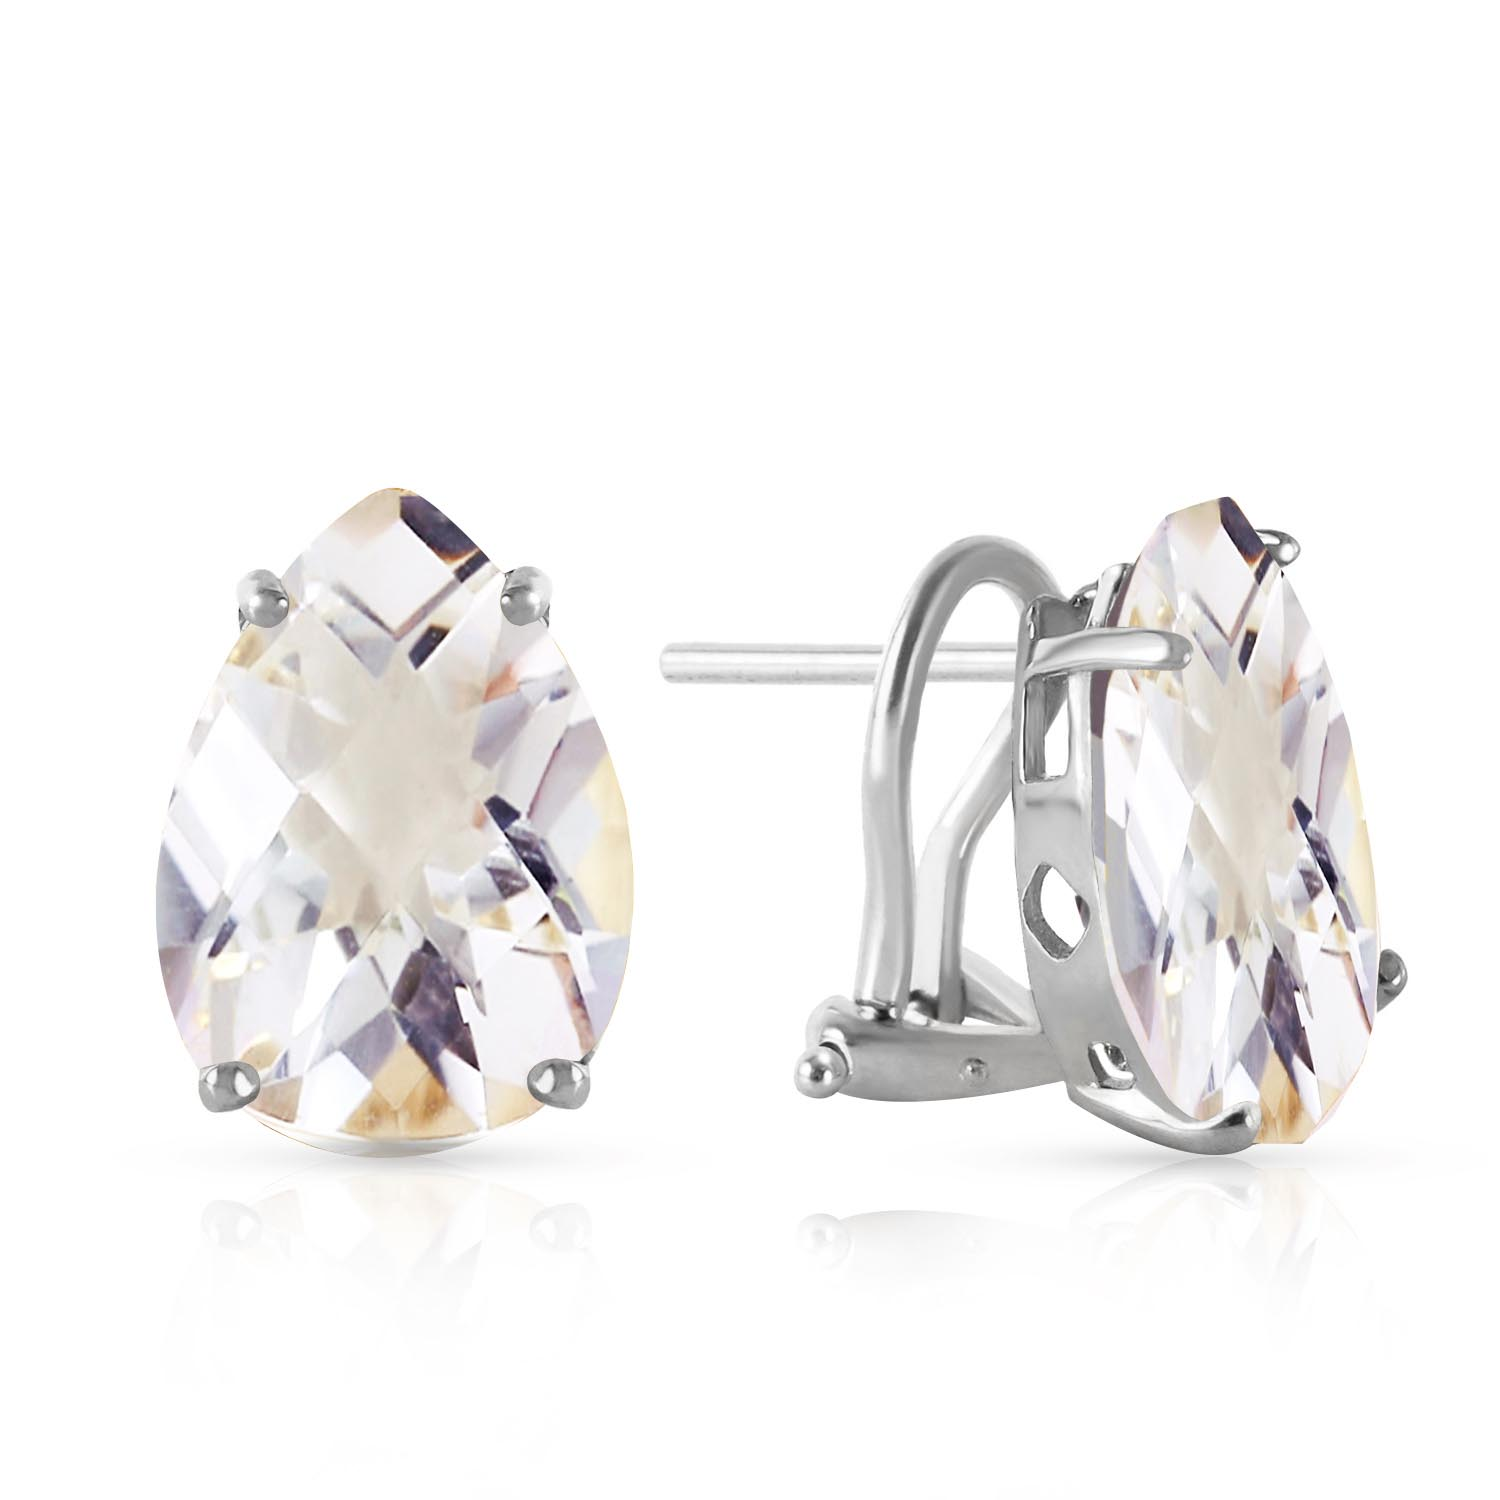 Bargain White Topaz Droplet Stud Earrings 10.0ctw in 9ct White Gold Stockists